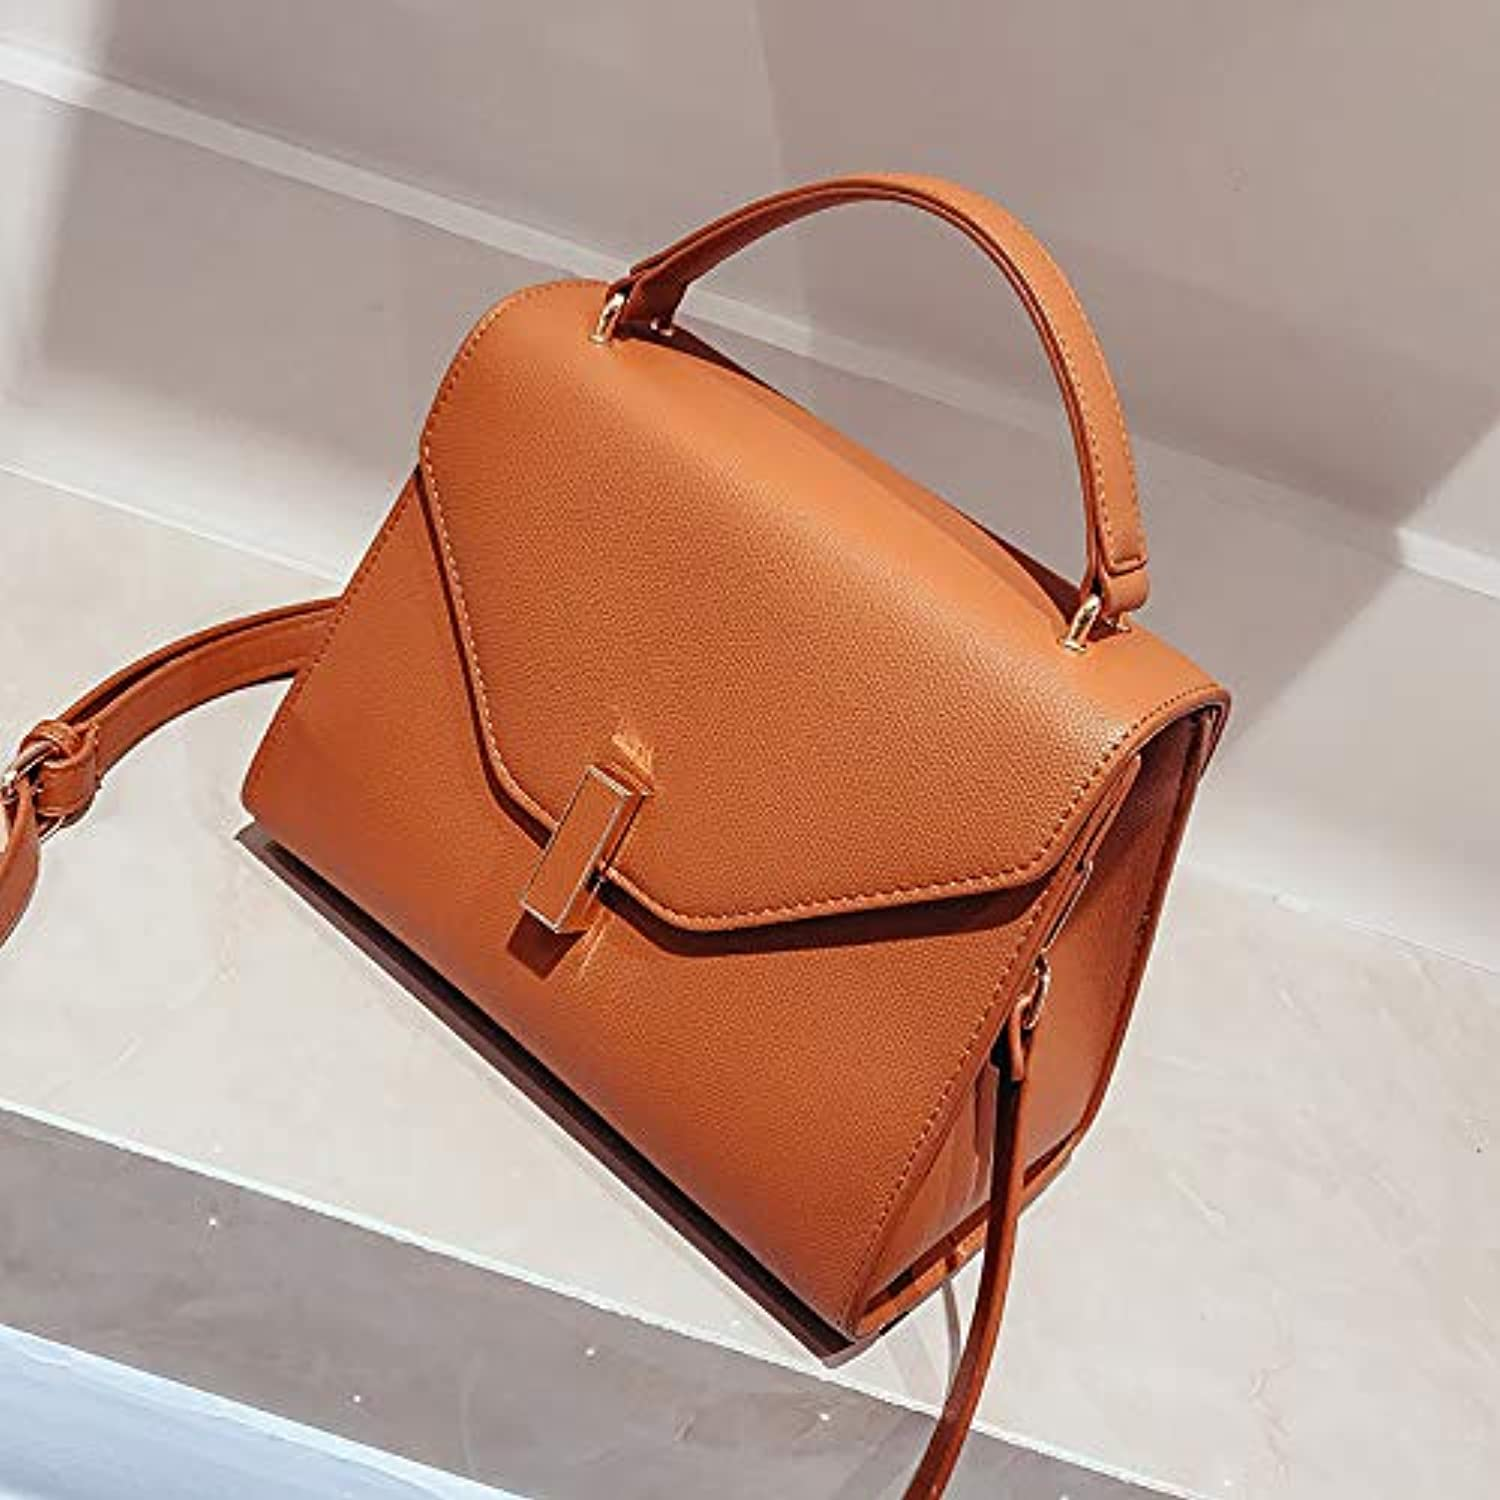 WANGZHAO Handbag, Shoulder Bag, Satchel Bag, Simple Fashion Bag.